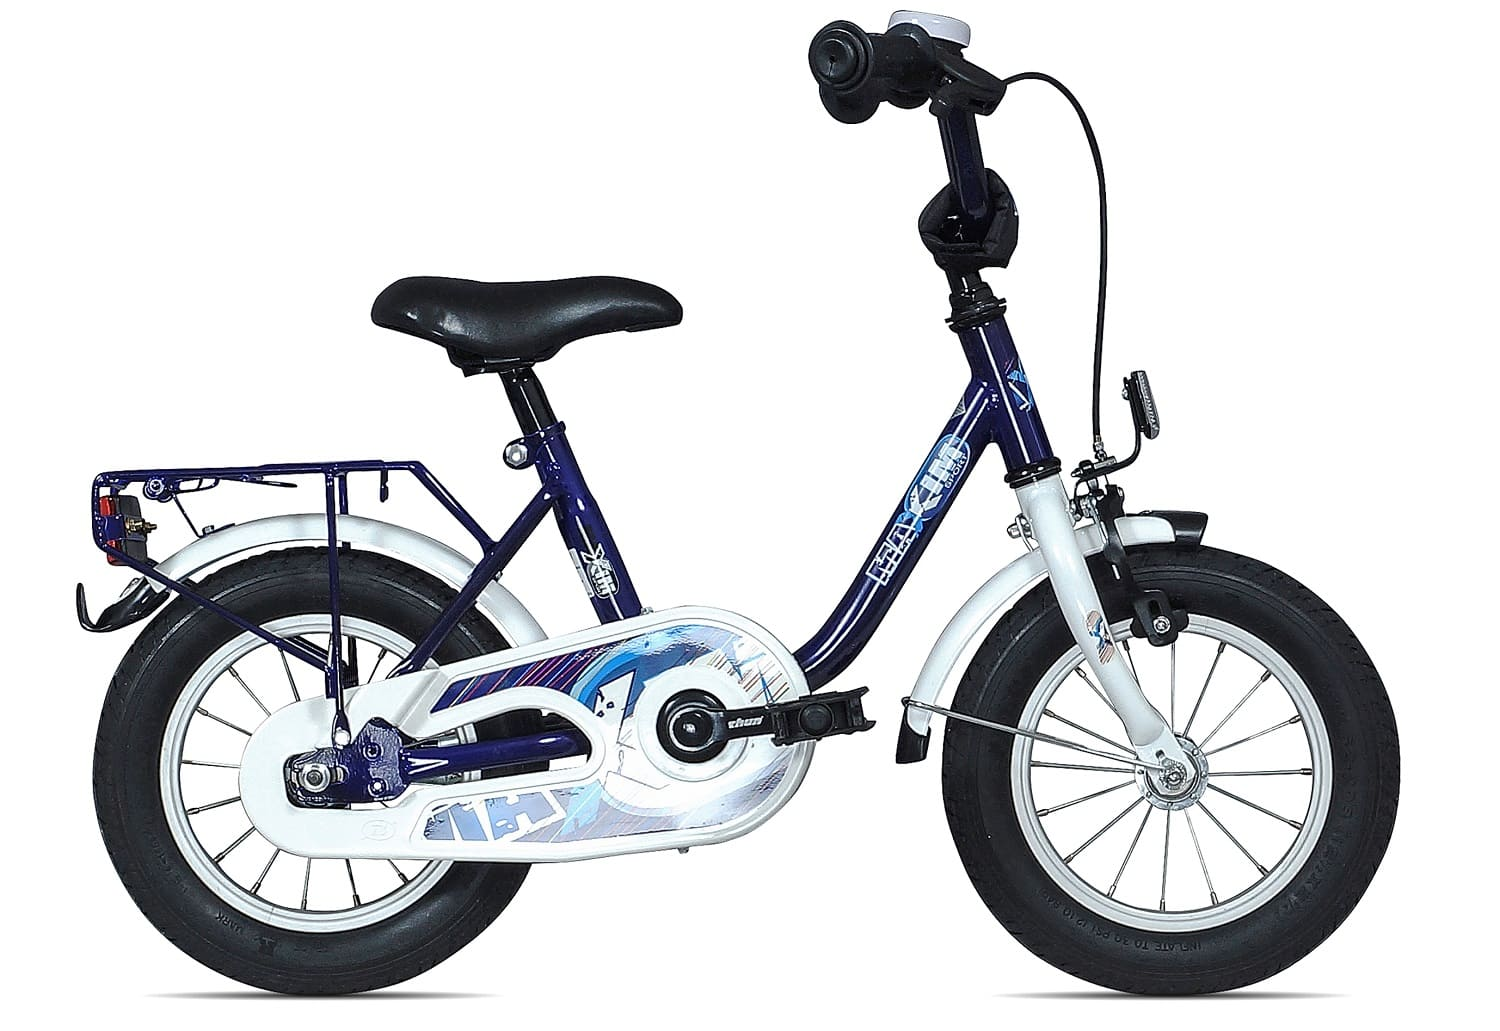 maxim kinderfahrrad 12 5 zoll 23 cm blau wei. Black Bedroom Furniture Sets. Home Design Ideas